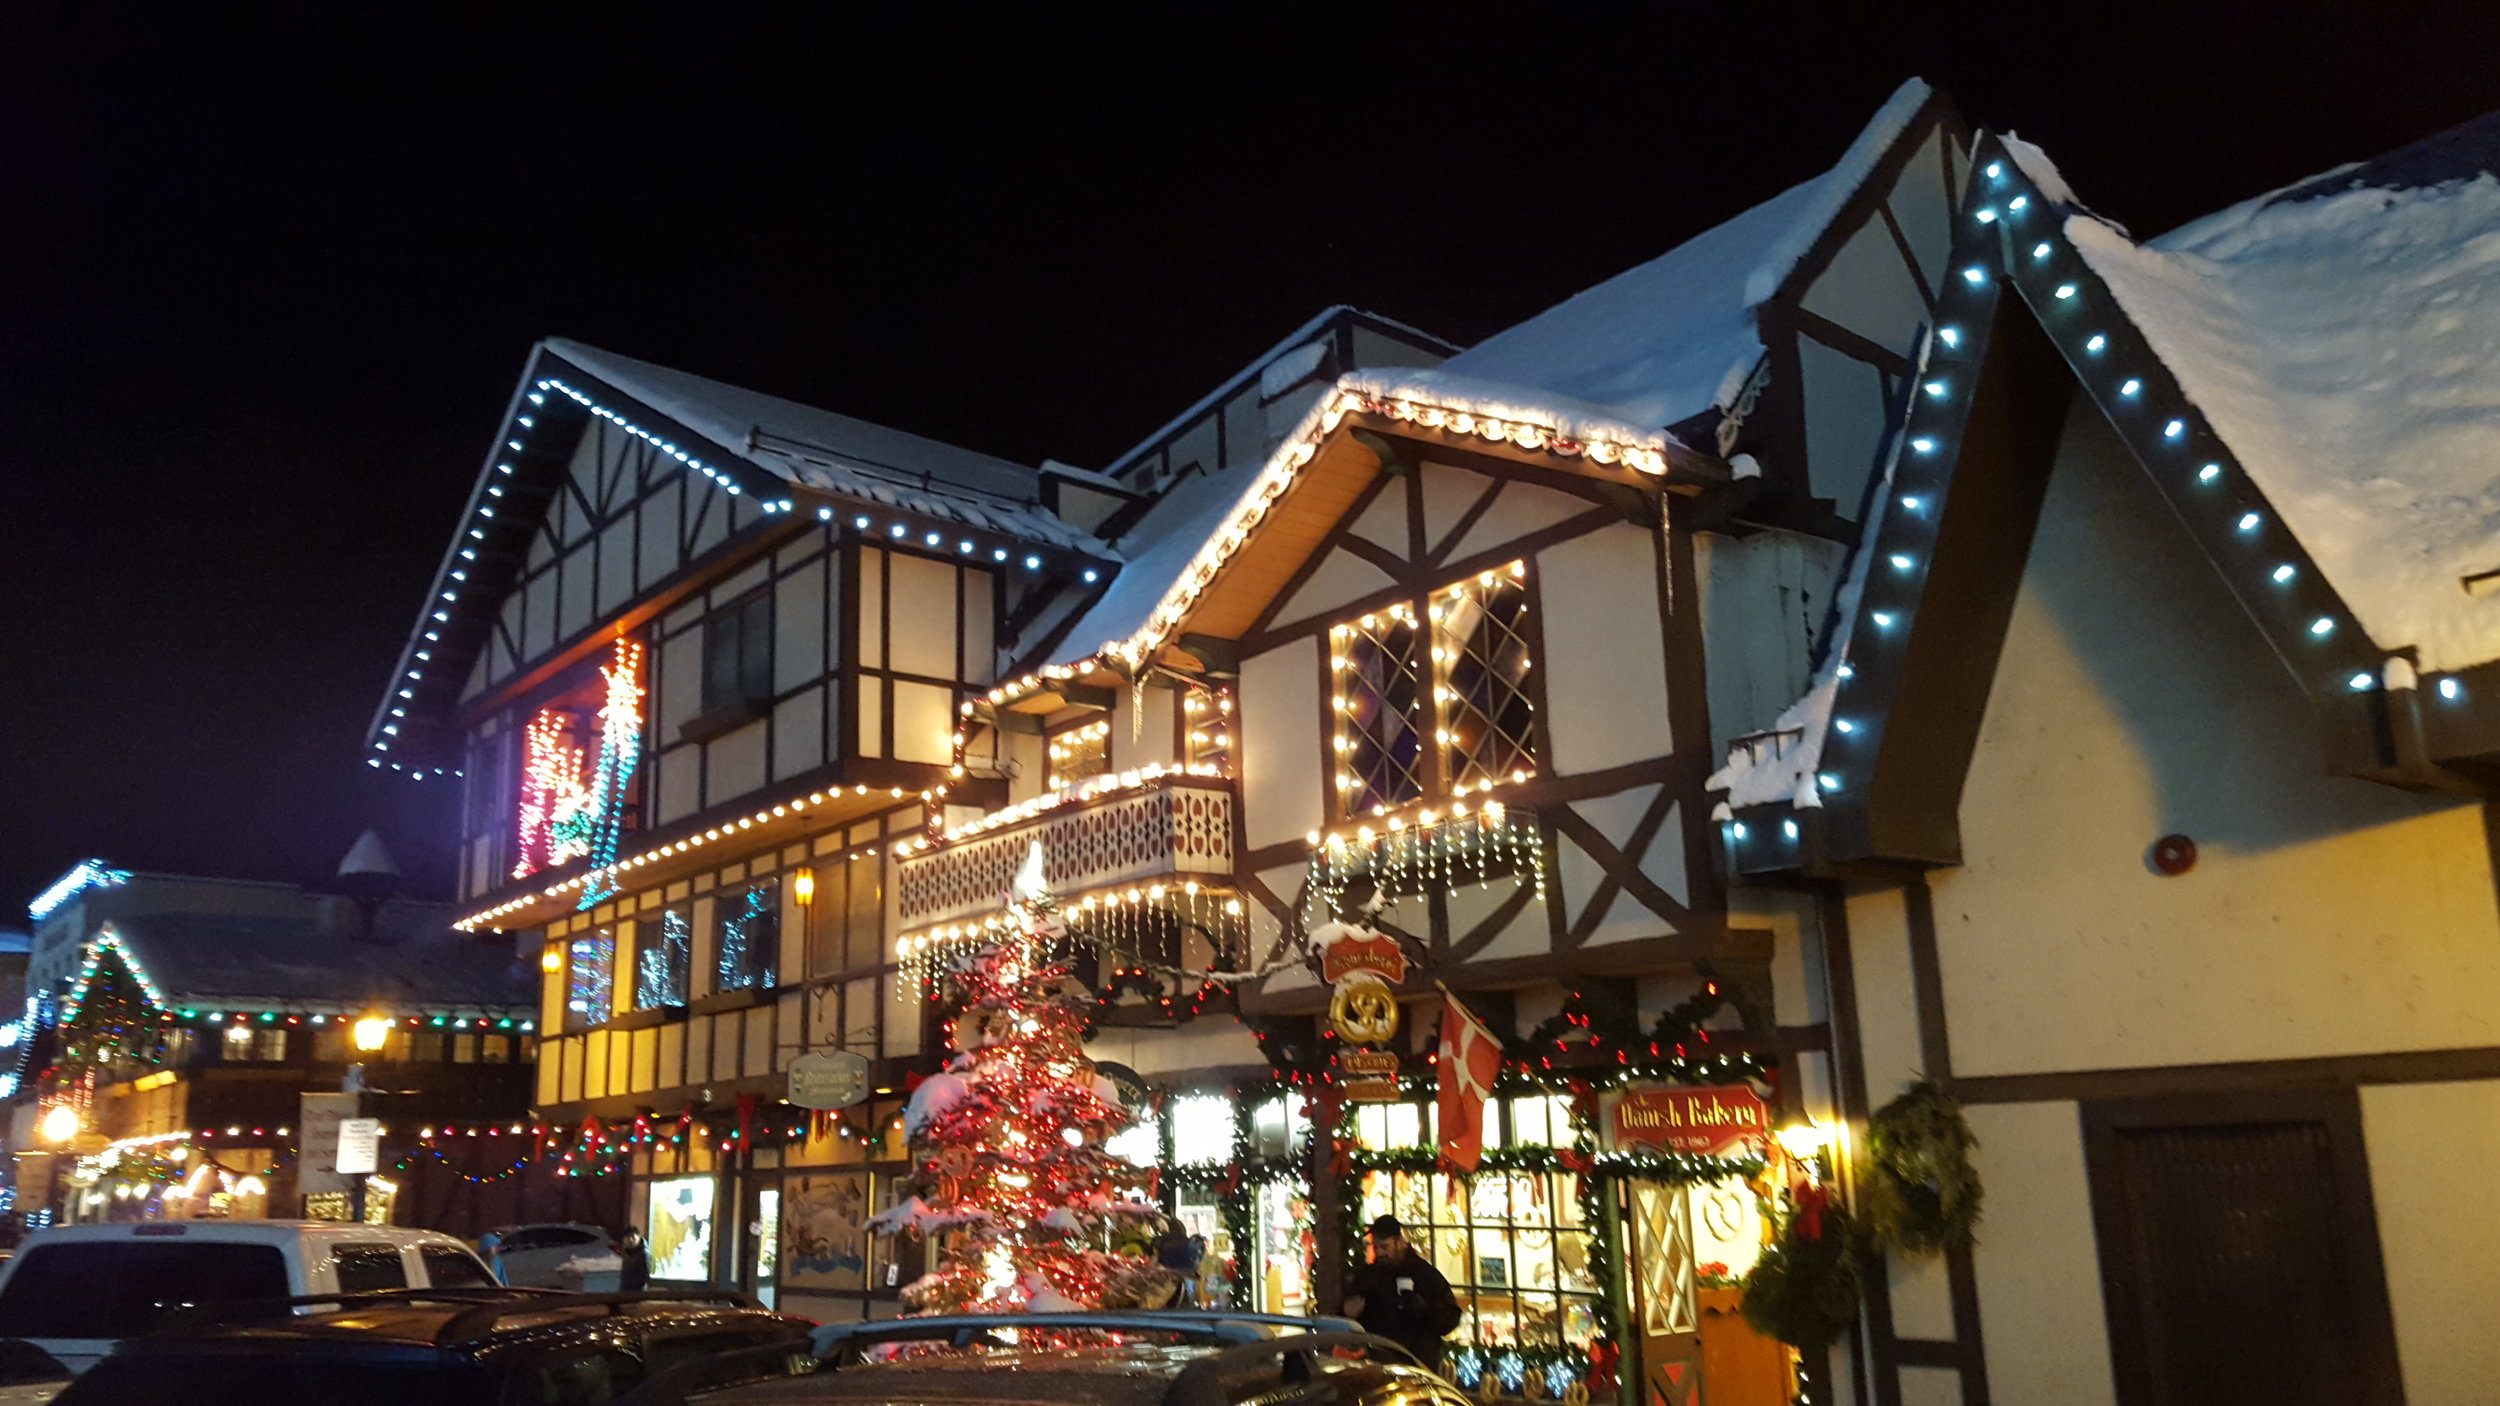 Leavenworth, A Charming Christmas Town